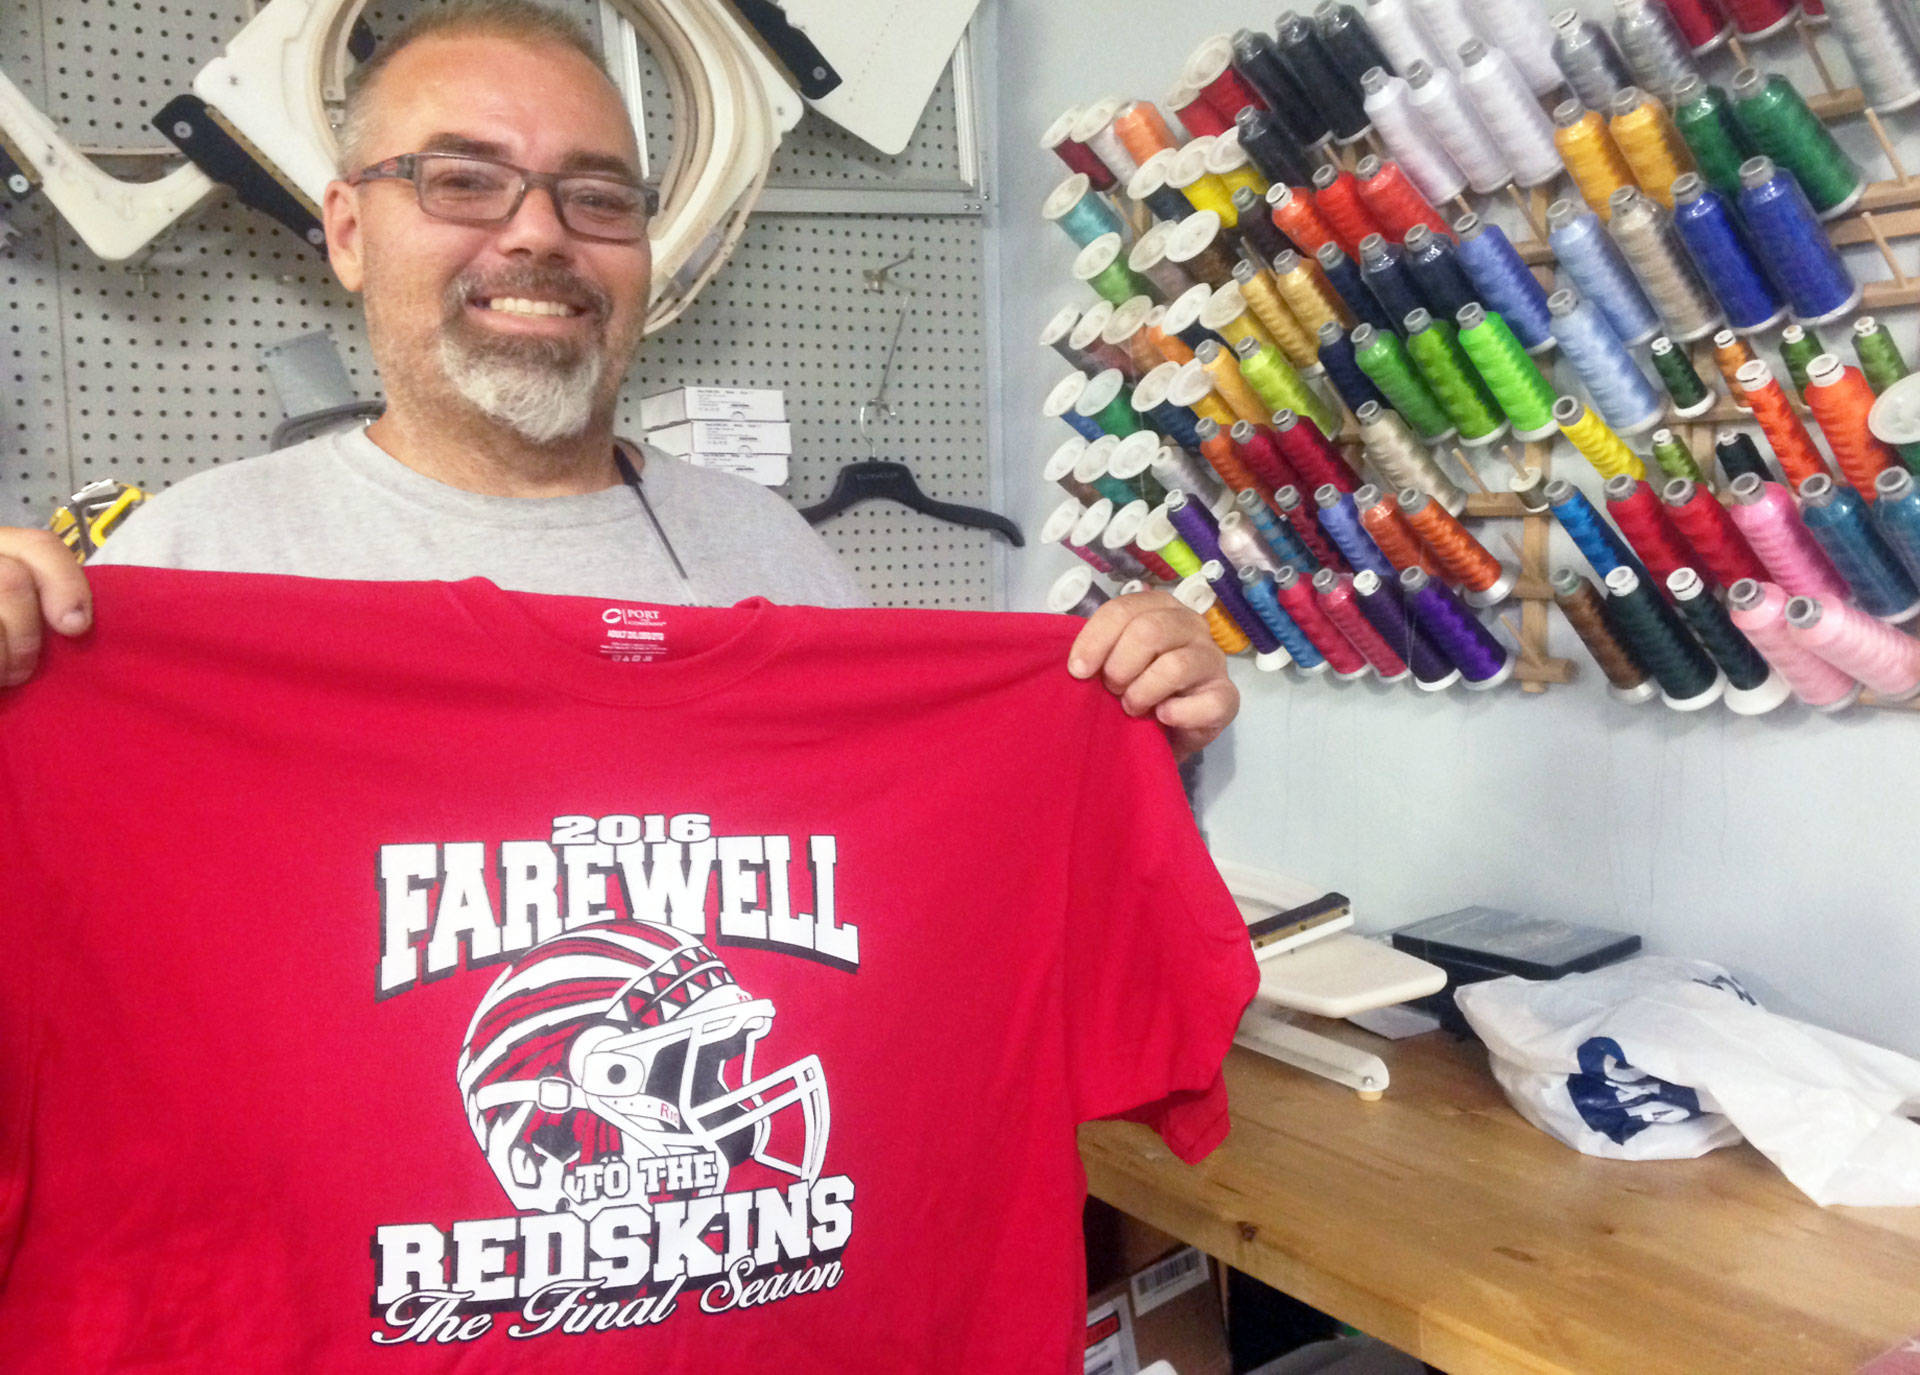 Chowchilla School Must Drop 'Redskins' Name, But Town Won't Let It Go Easily